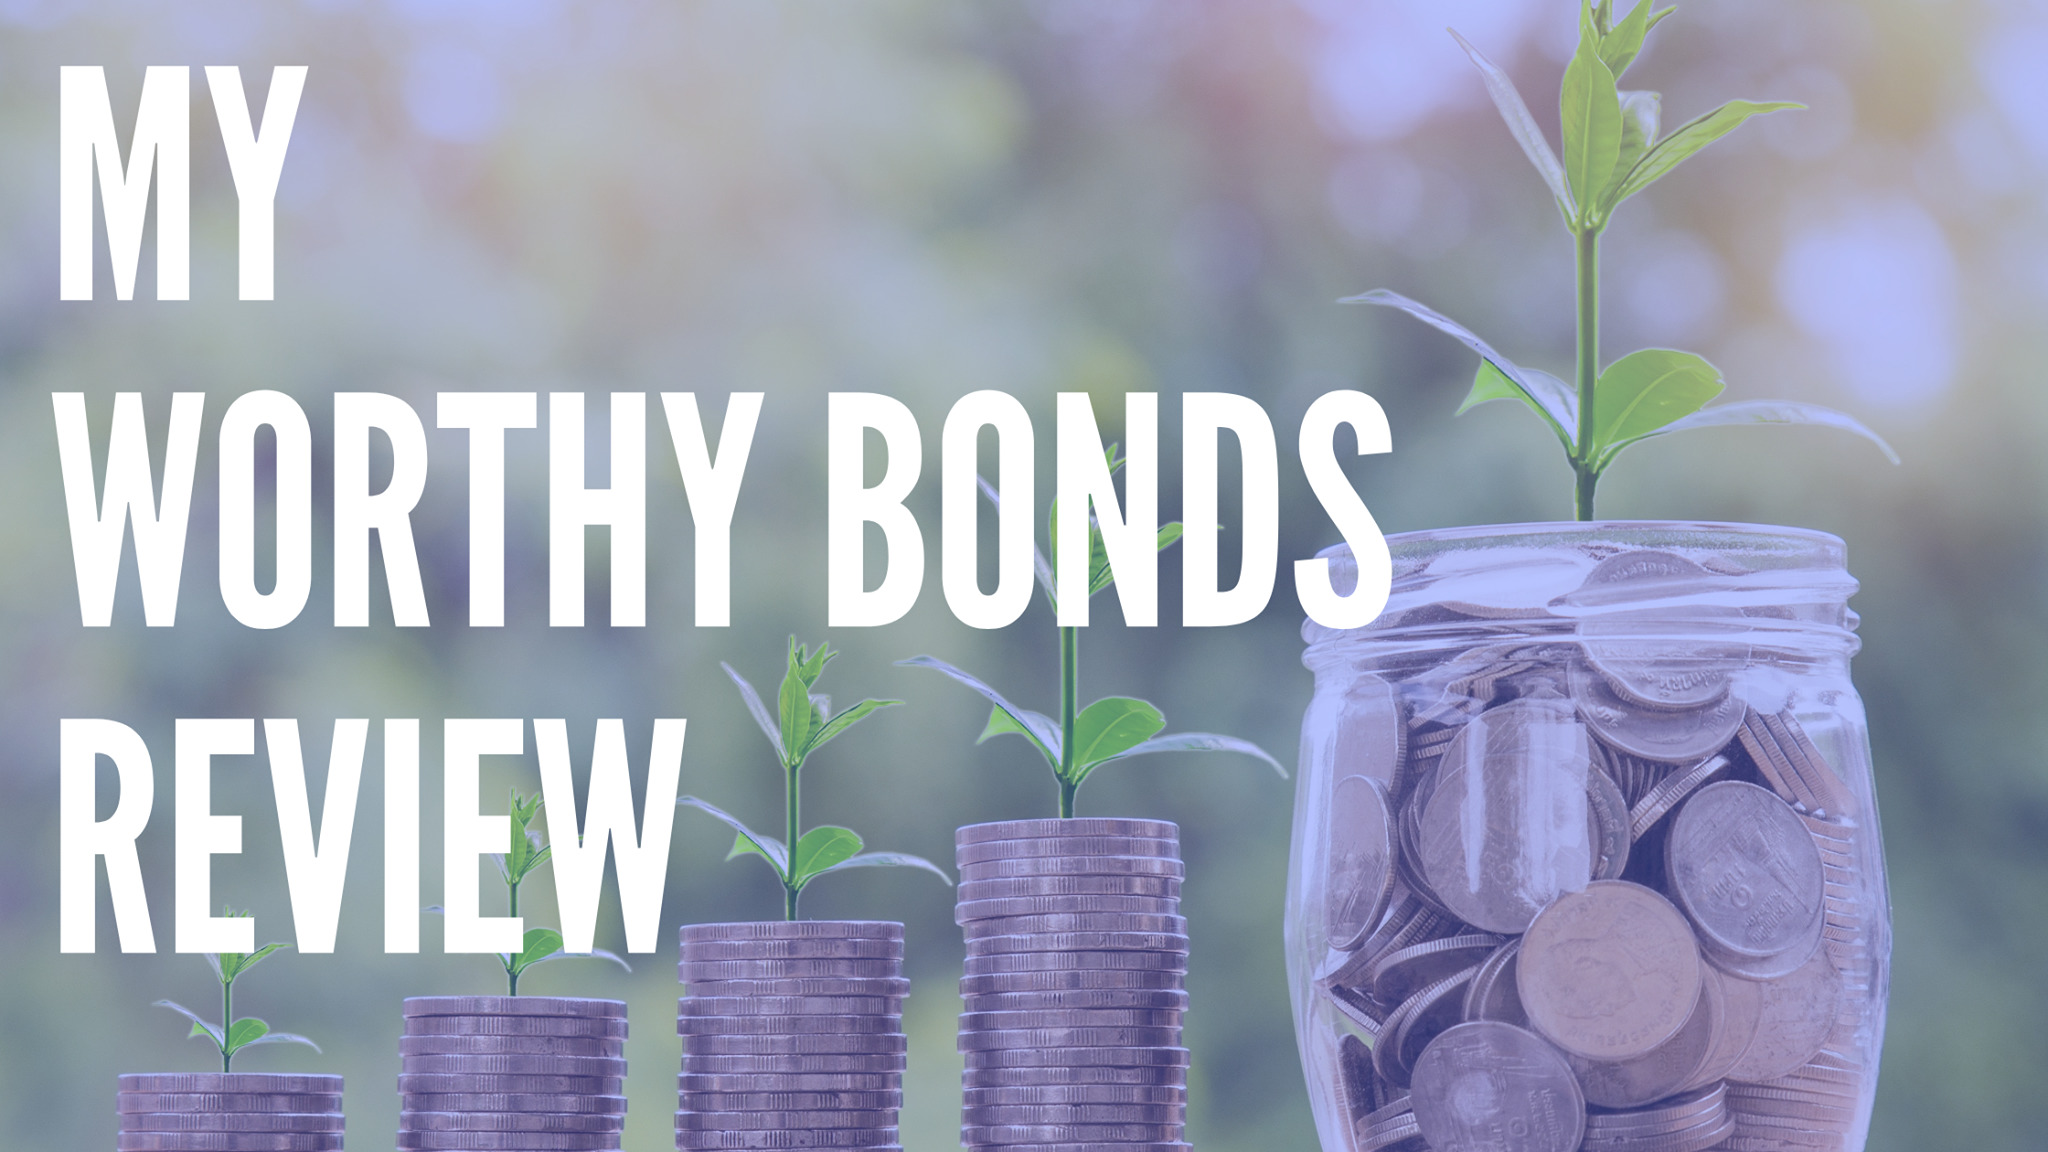 Worthy Bonds review